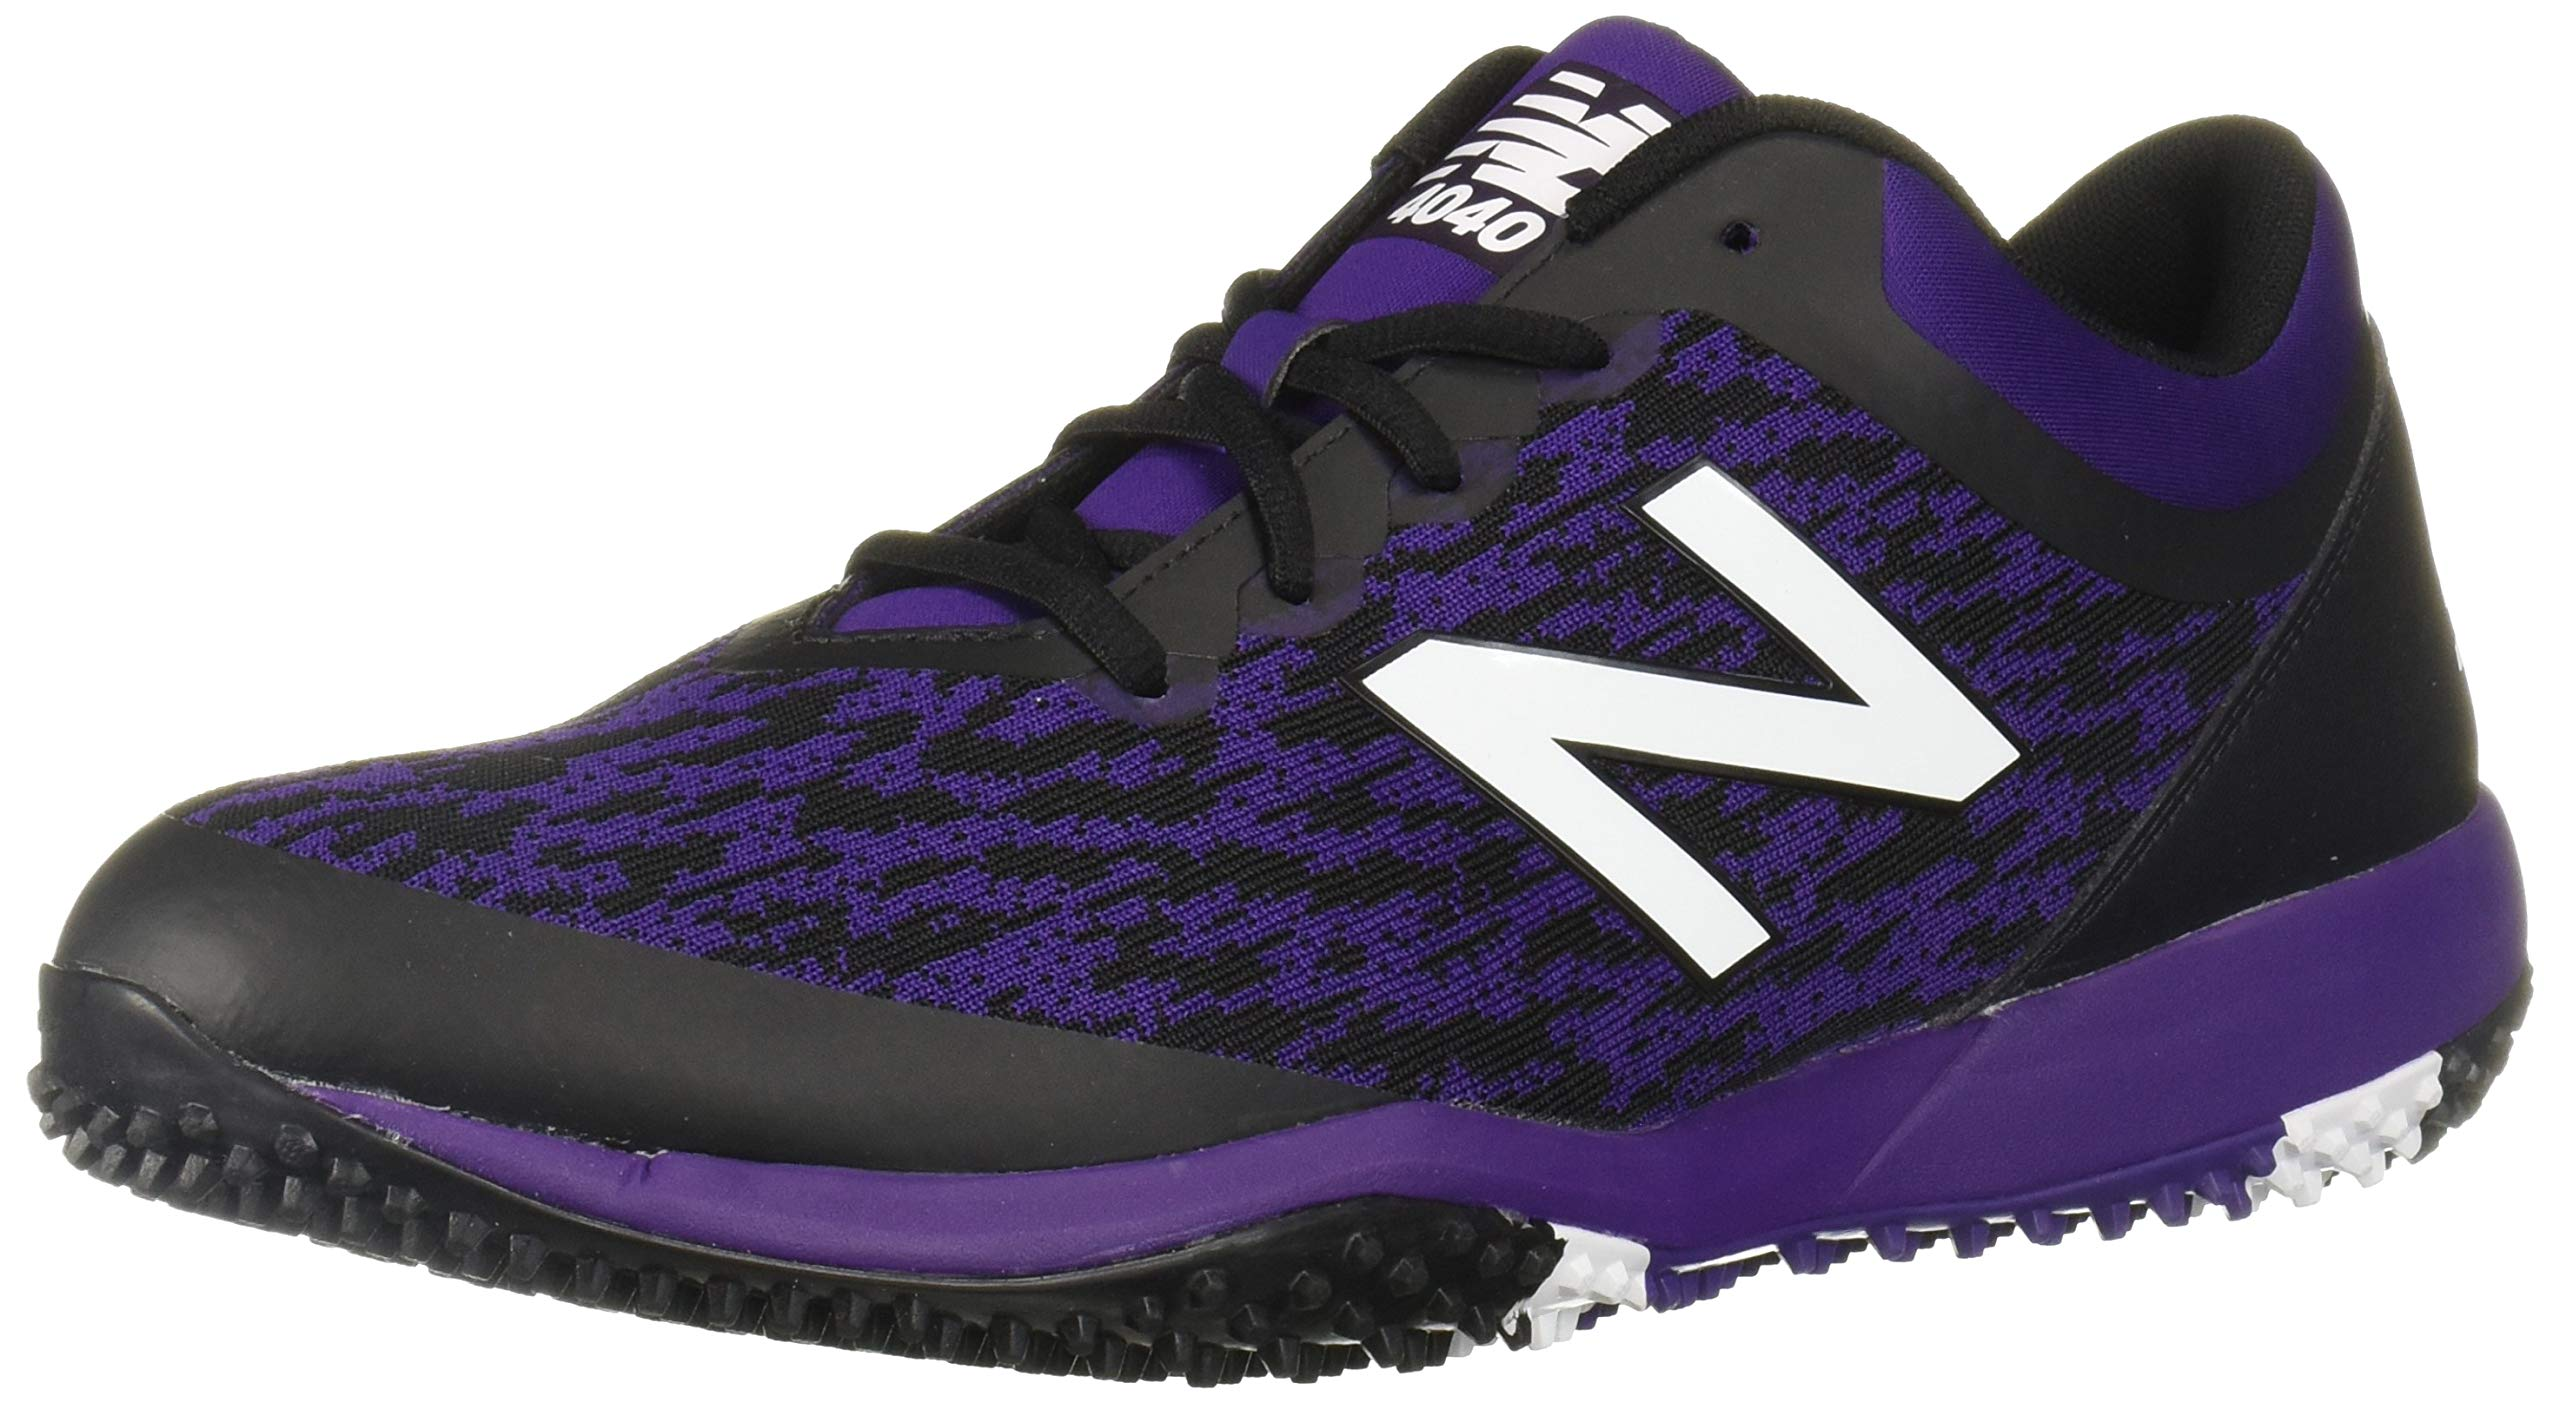 New Balance Men's 4040v5 Turf Track and Field Shoe, Black/Purple, 5 D US